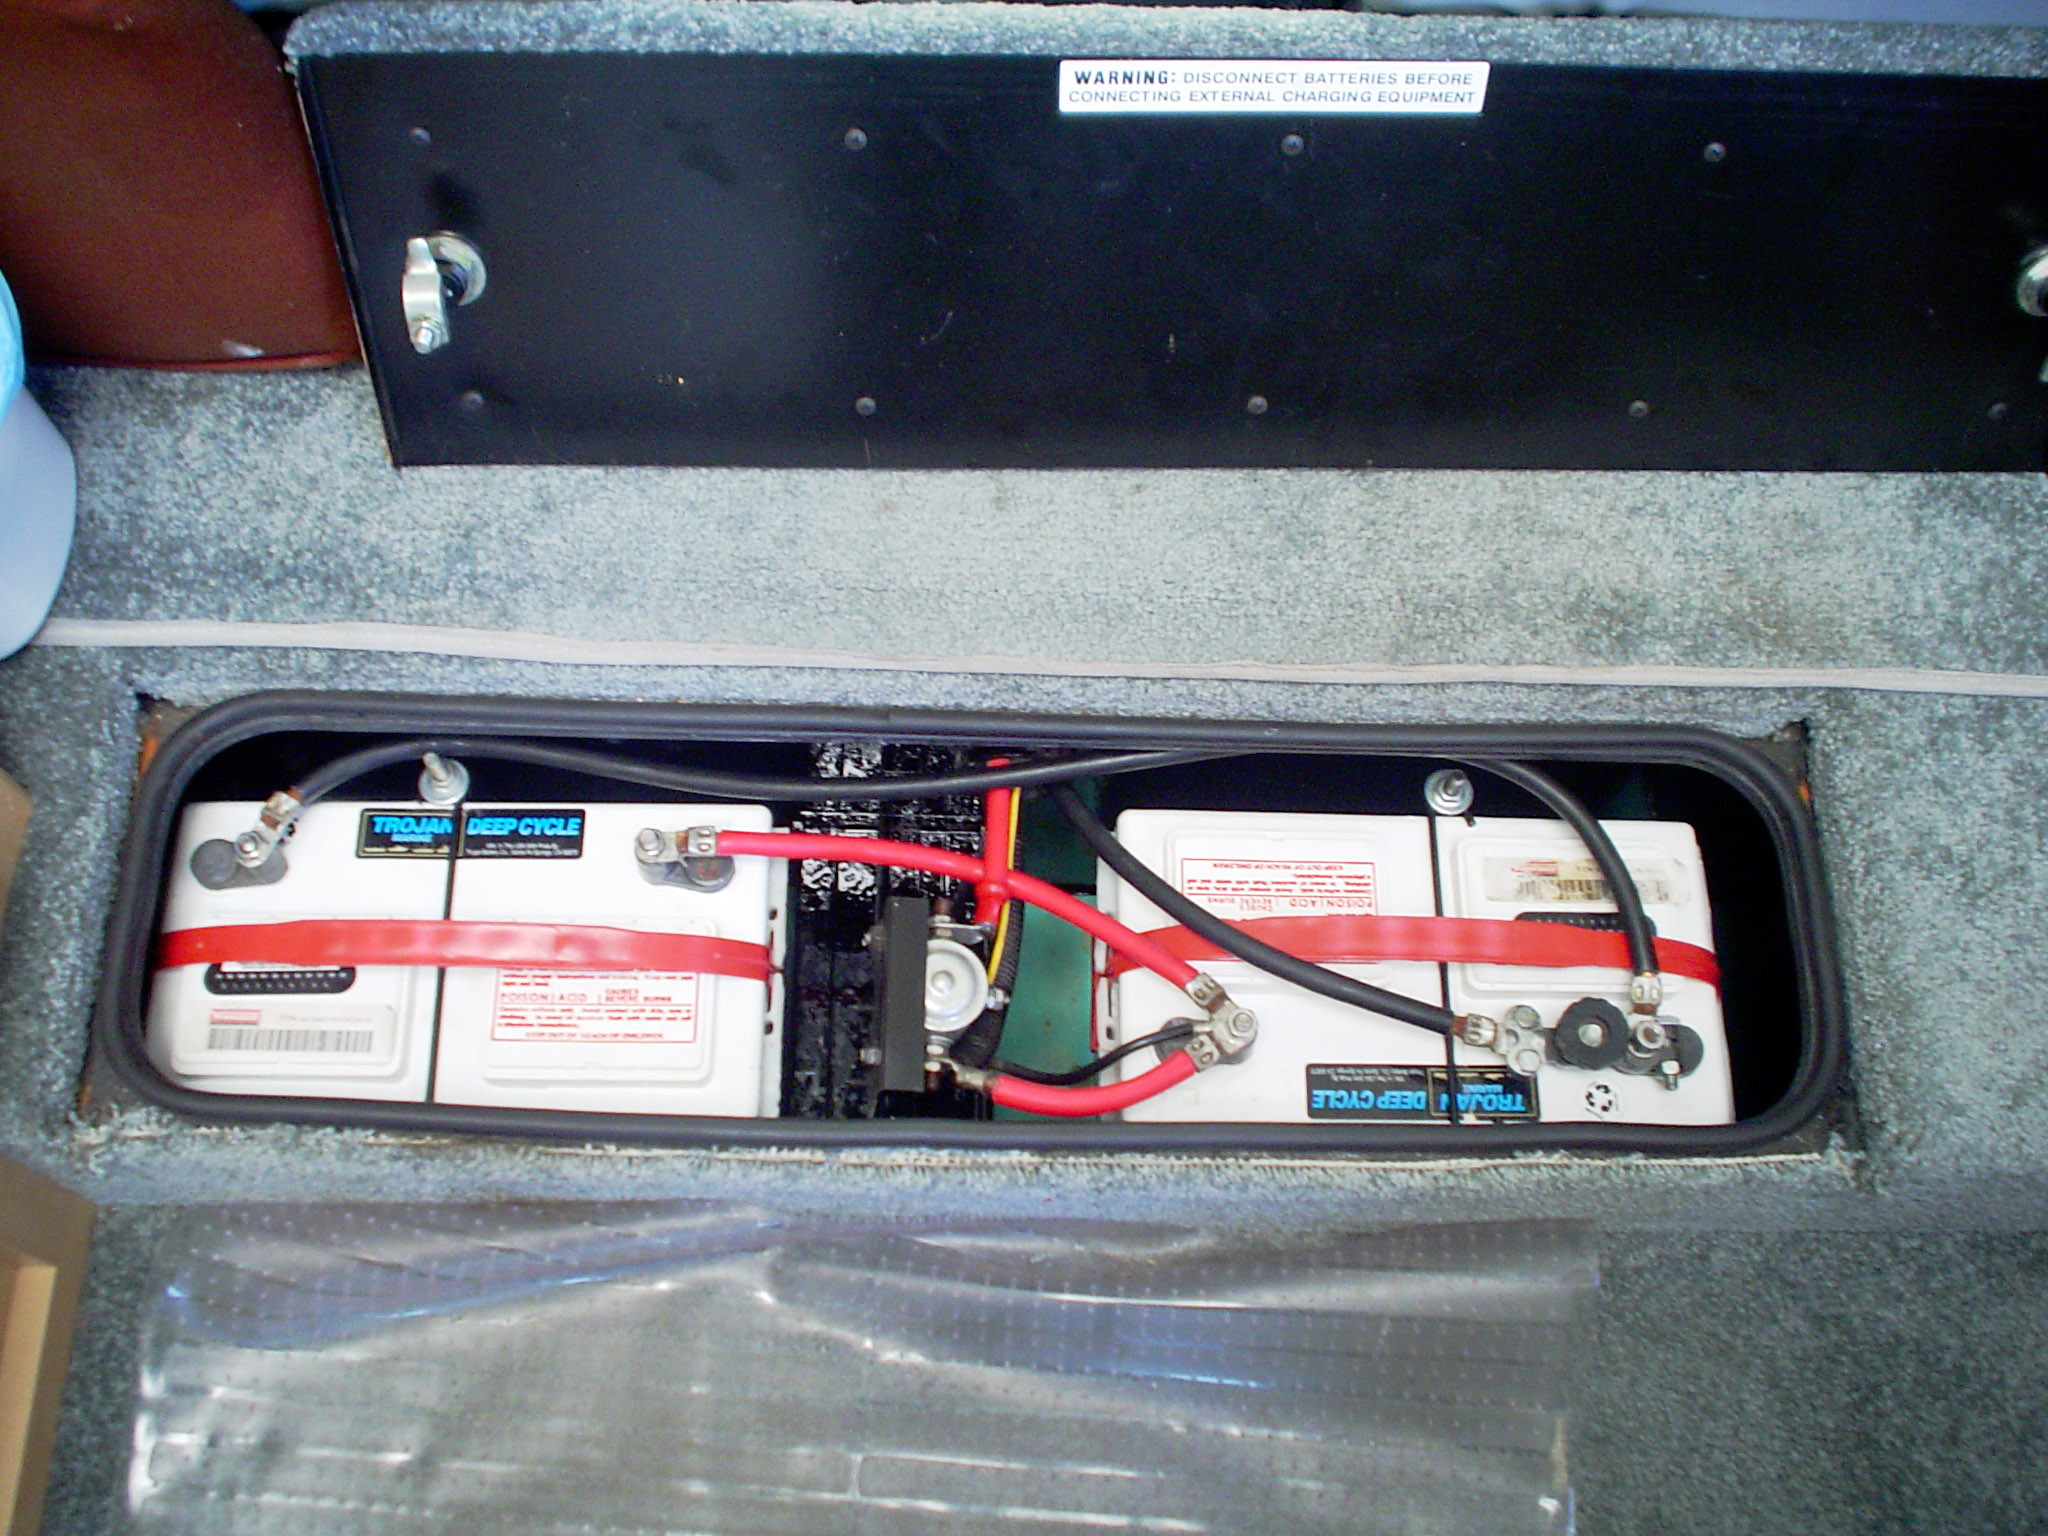 Coach Battery additionally Batterymodewiring moreover Mod besides Coach Battery Small besides Fuses Dash   Engine. on winnebago battery solenoid coach